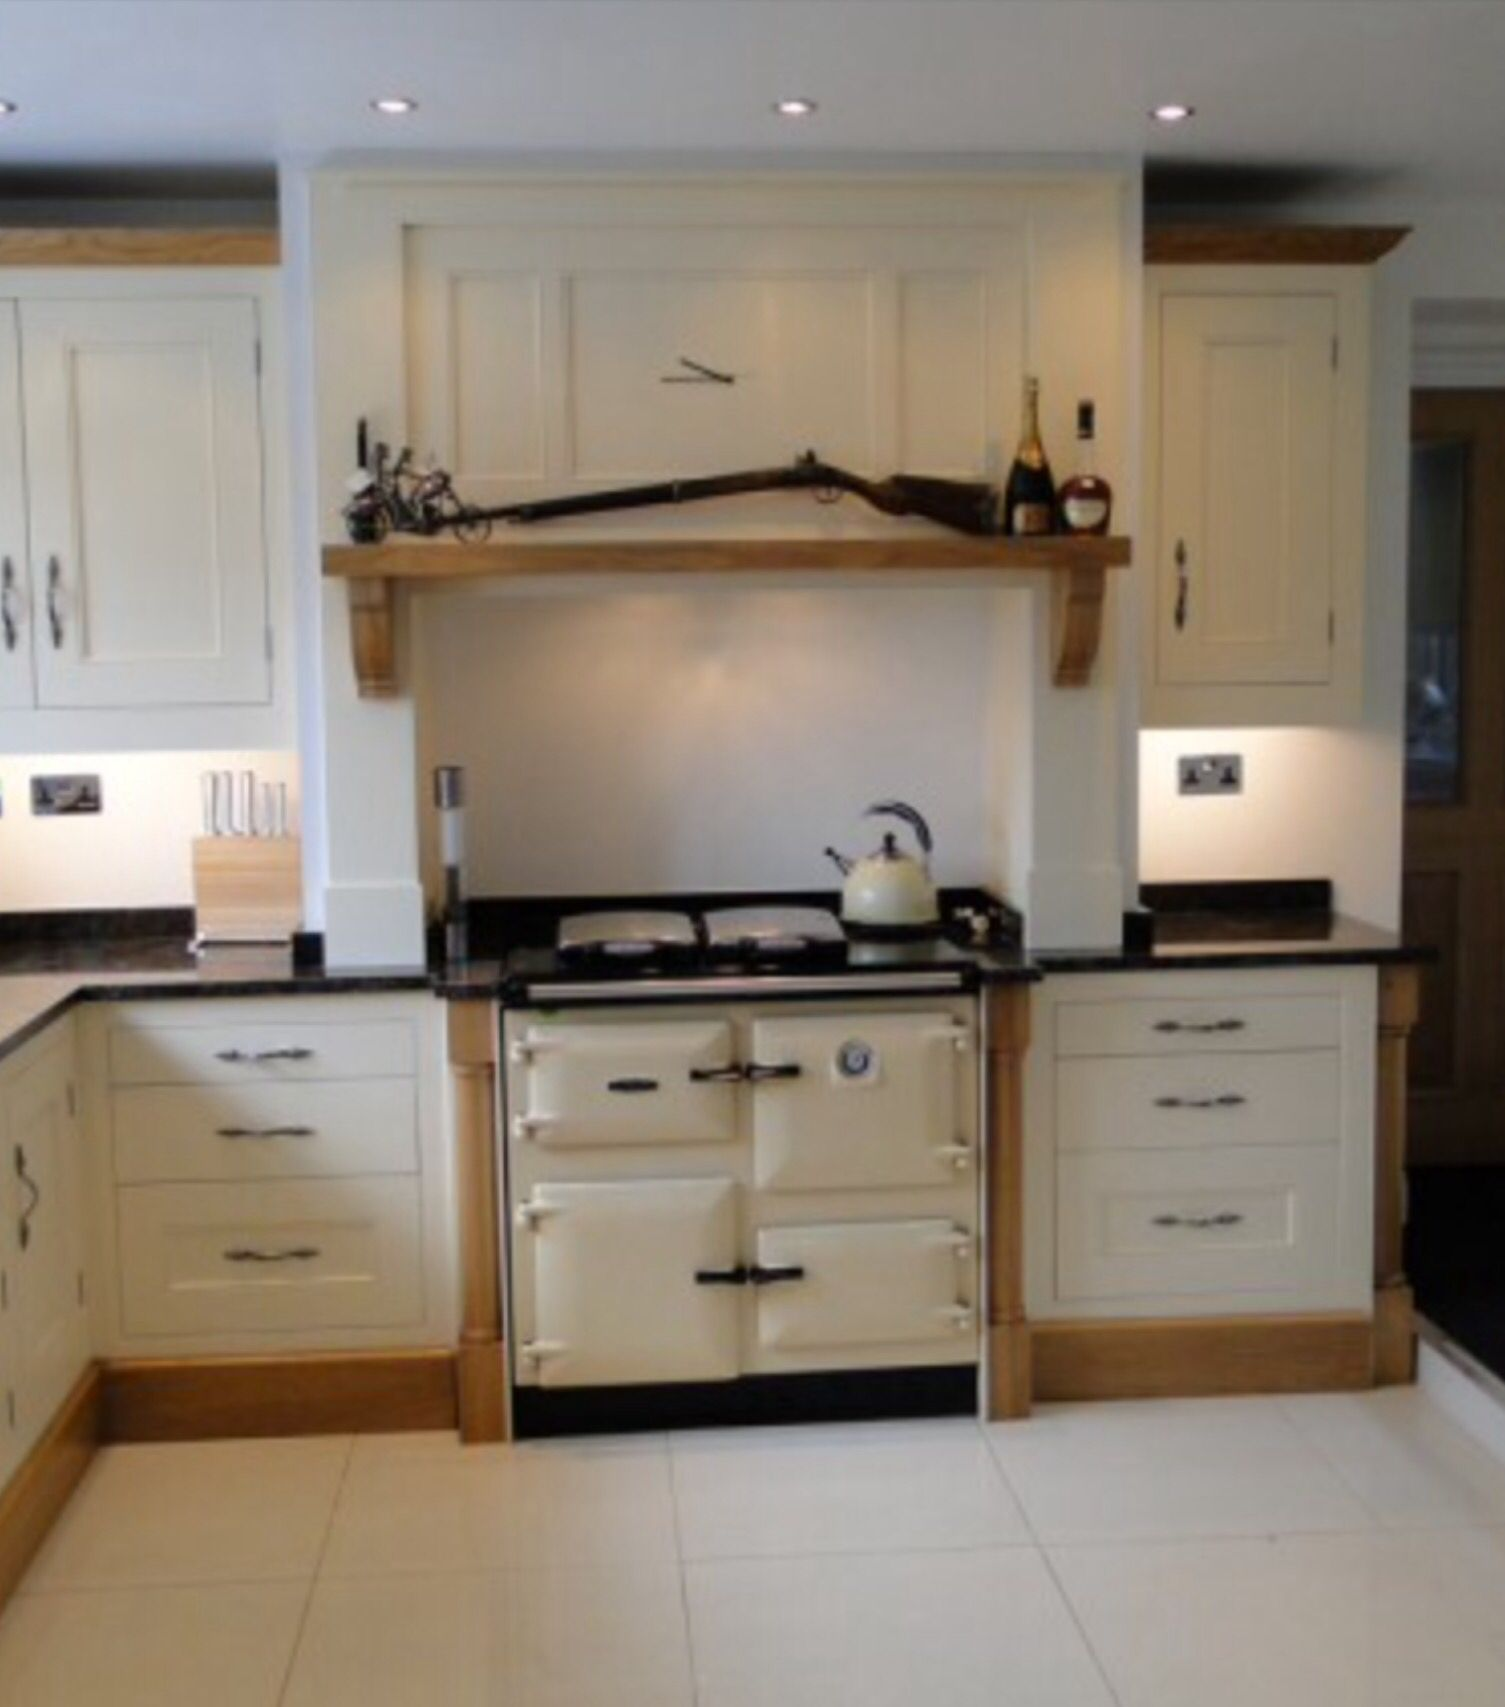 Range in front of fireplace   Kitchen fireplace, Kitchen appliance ...